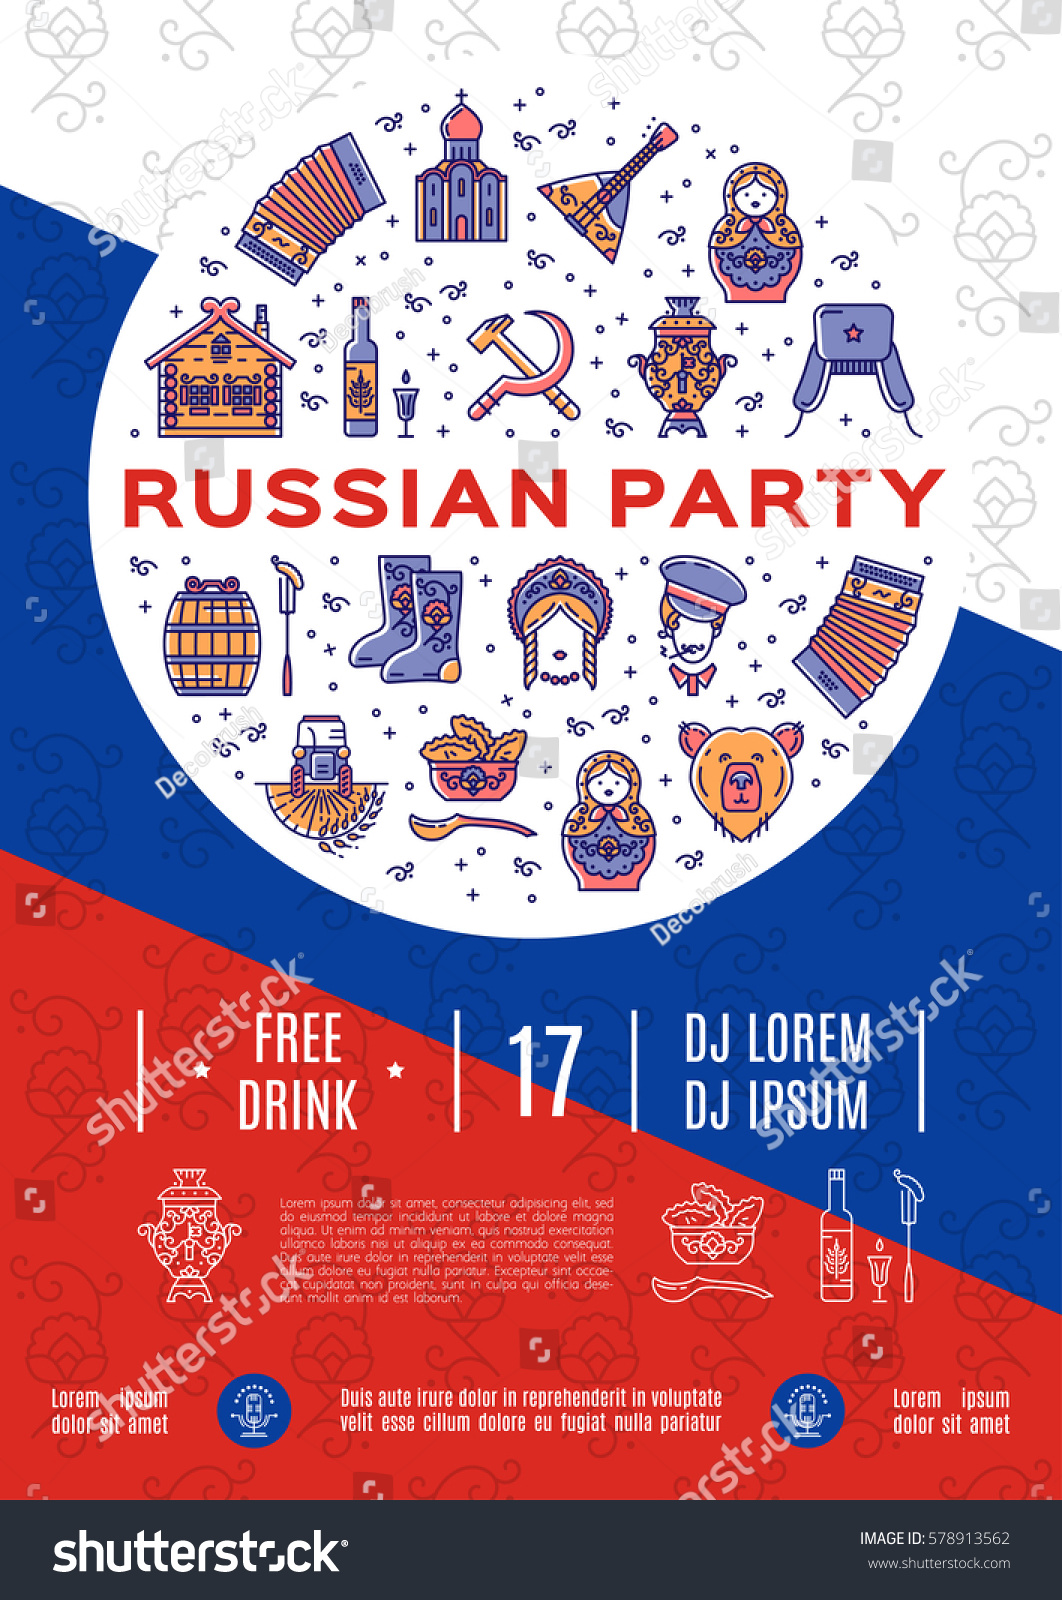 russian party poster music flyer a 4 のベクター画像素材